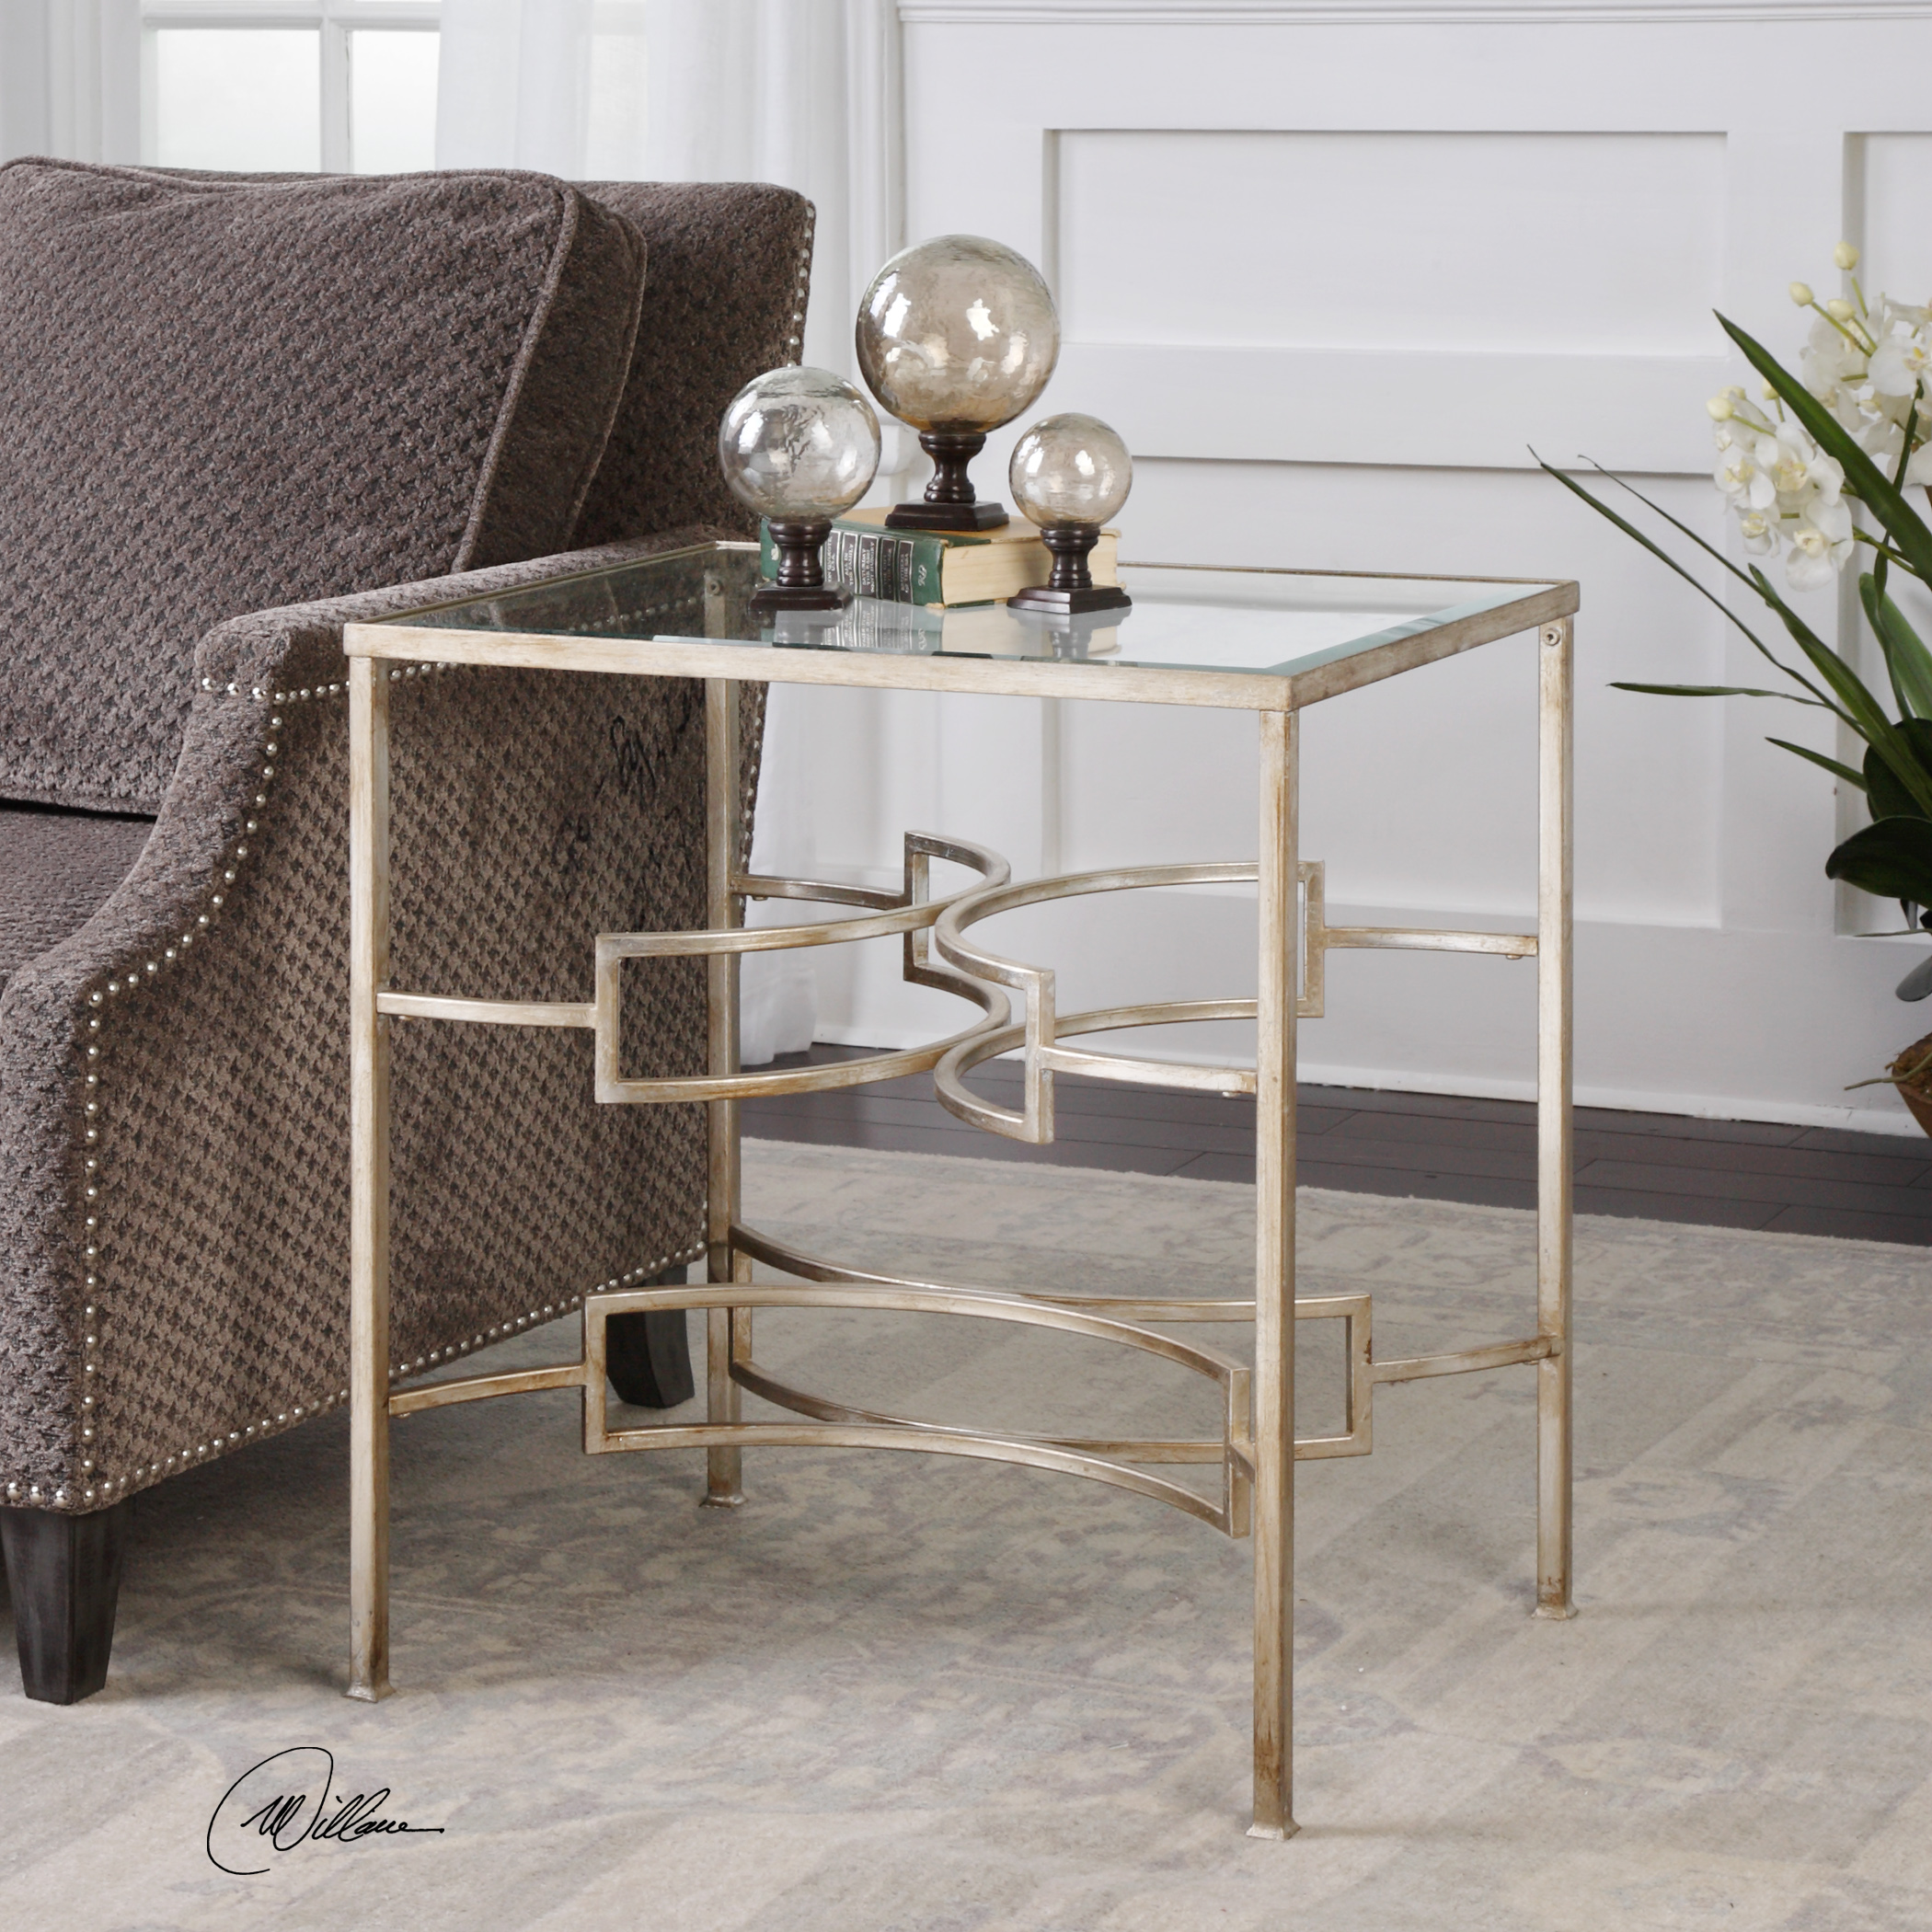 mid century modern open silver accent table iron metal glass top furn gray mini furniture target rose gold side end with shelf bedroom nightstand lamps coastal decor antique wood